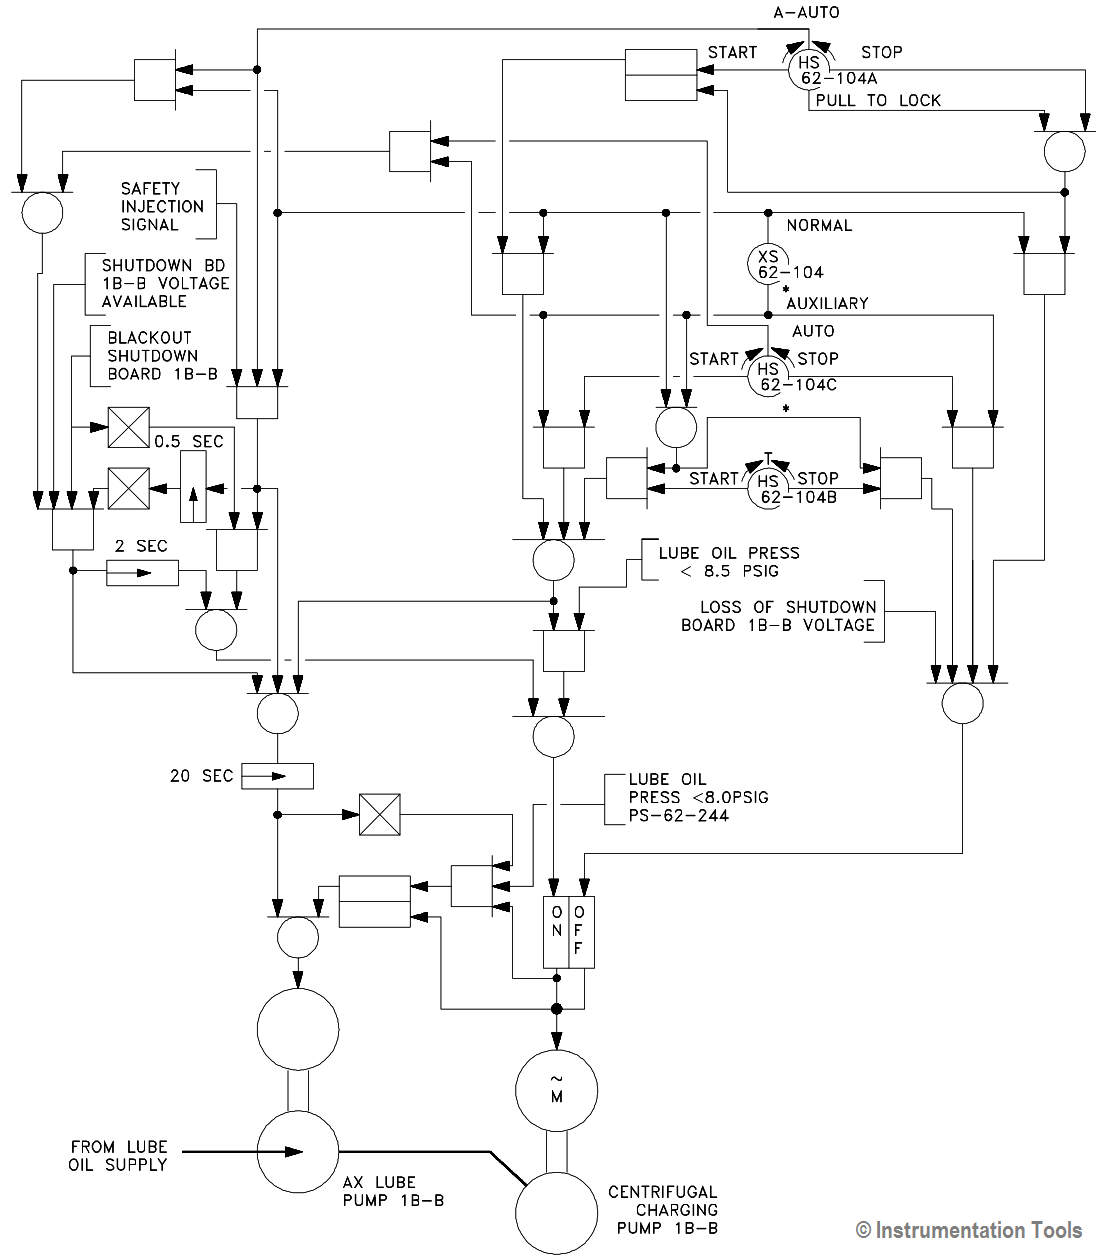 Pump Start Logic Diagram